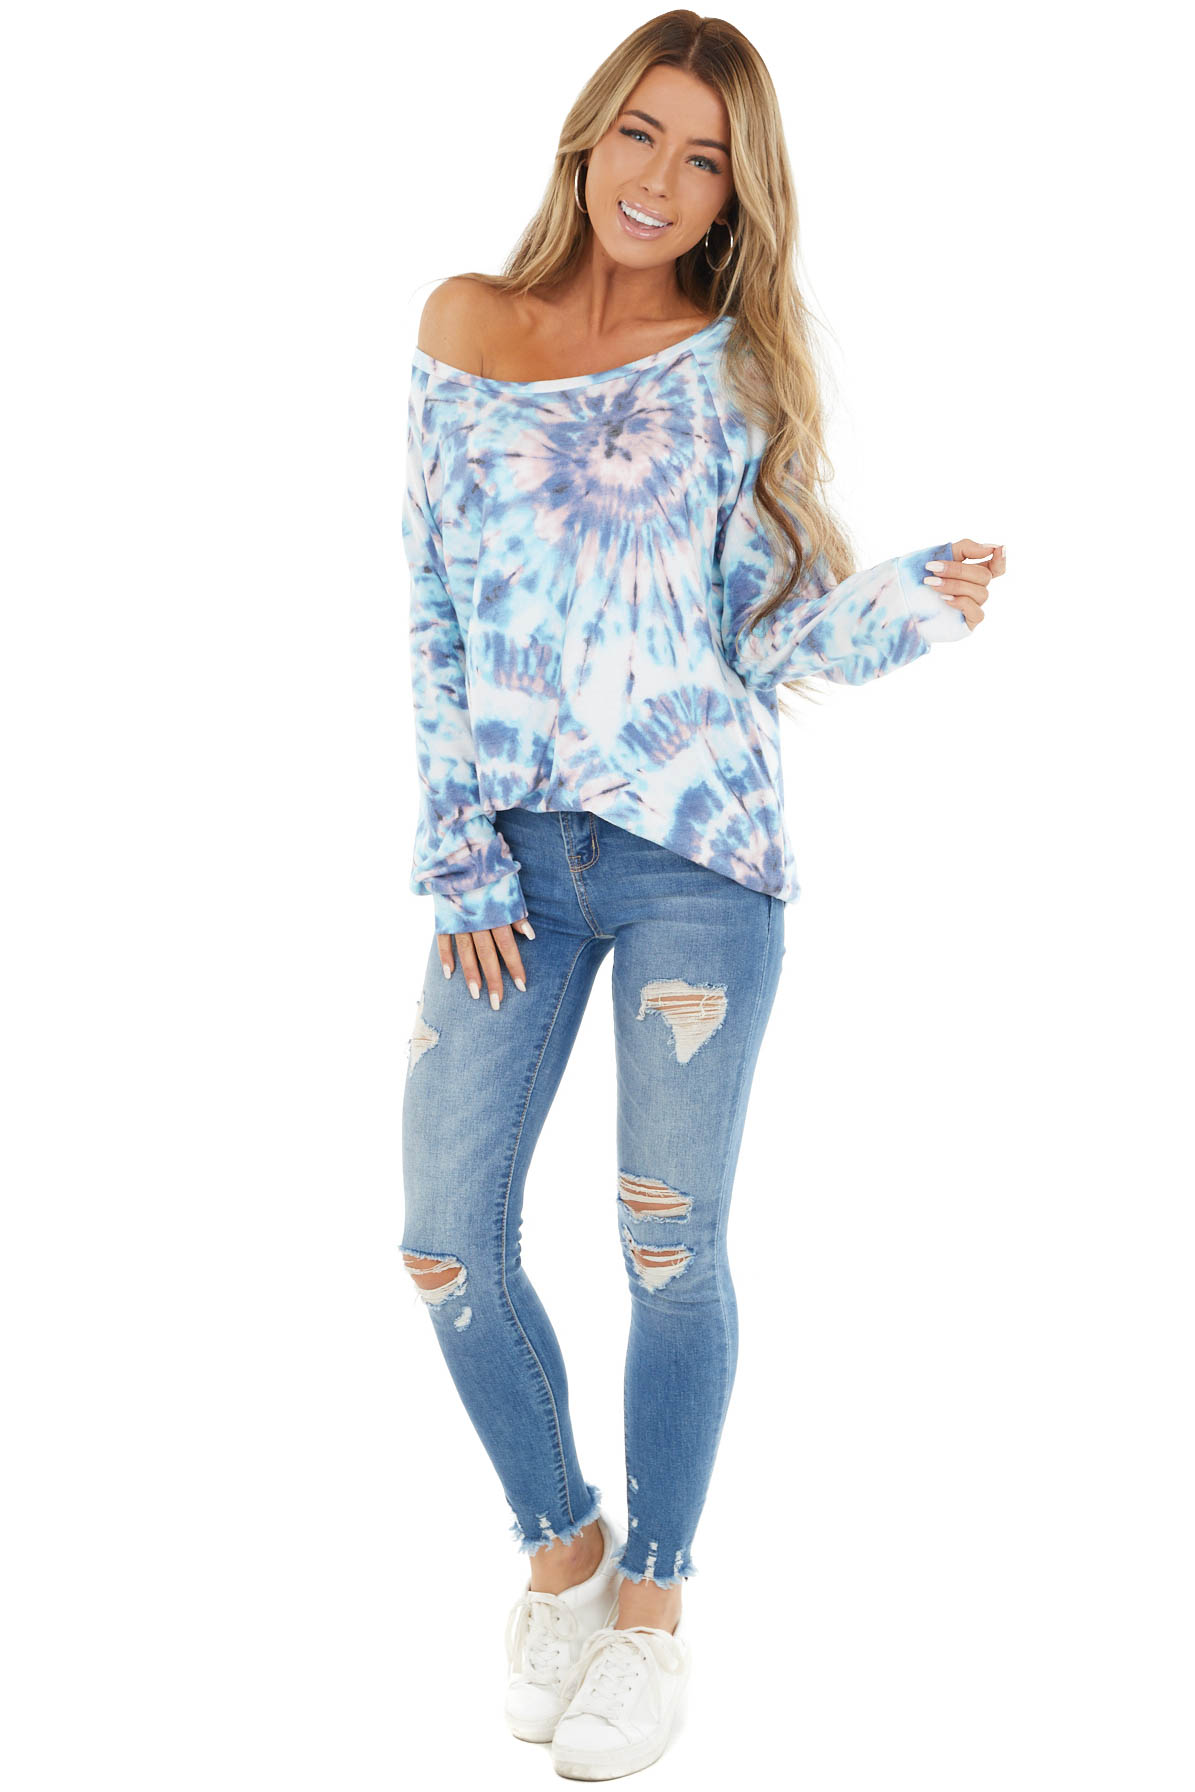 Teal And Dusty Blue Tie Dye Pullover Top With Long Sleeves